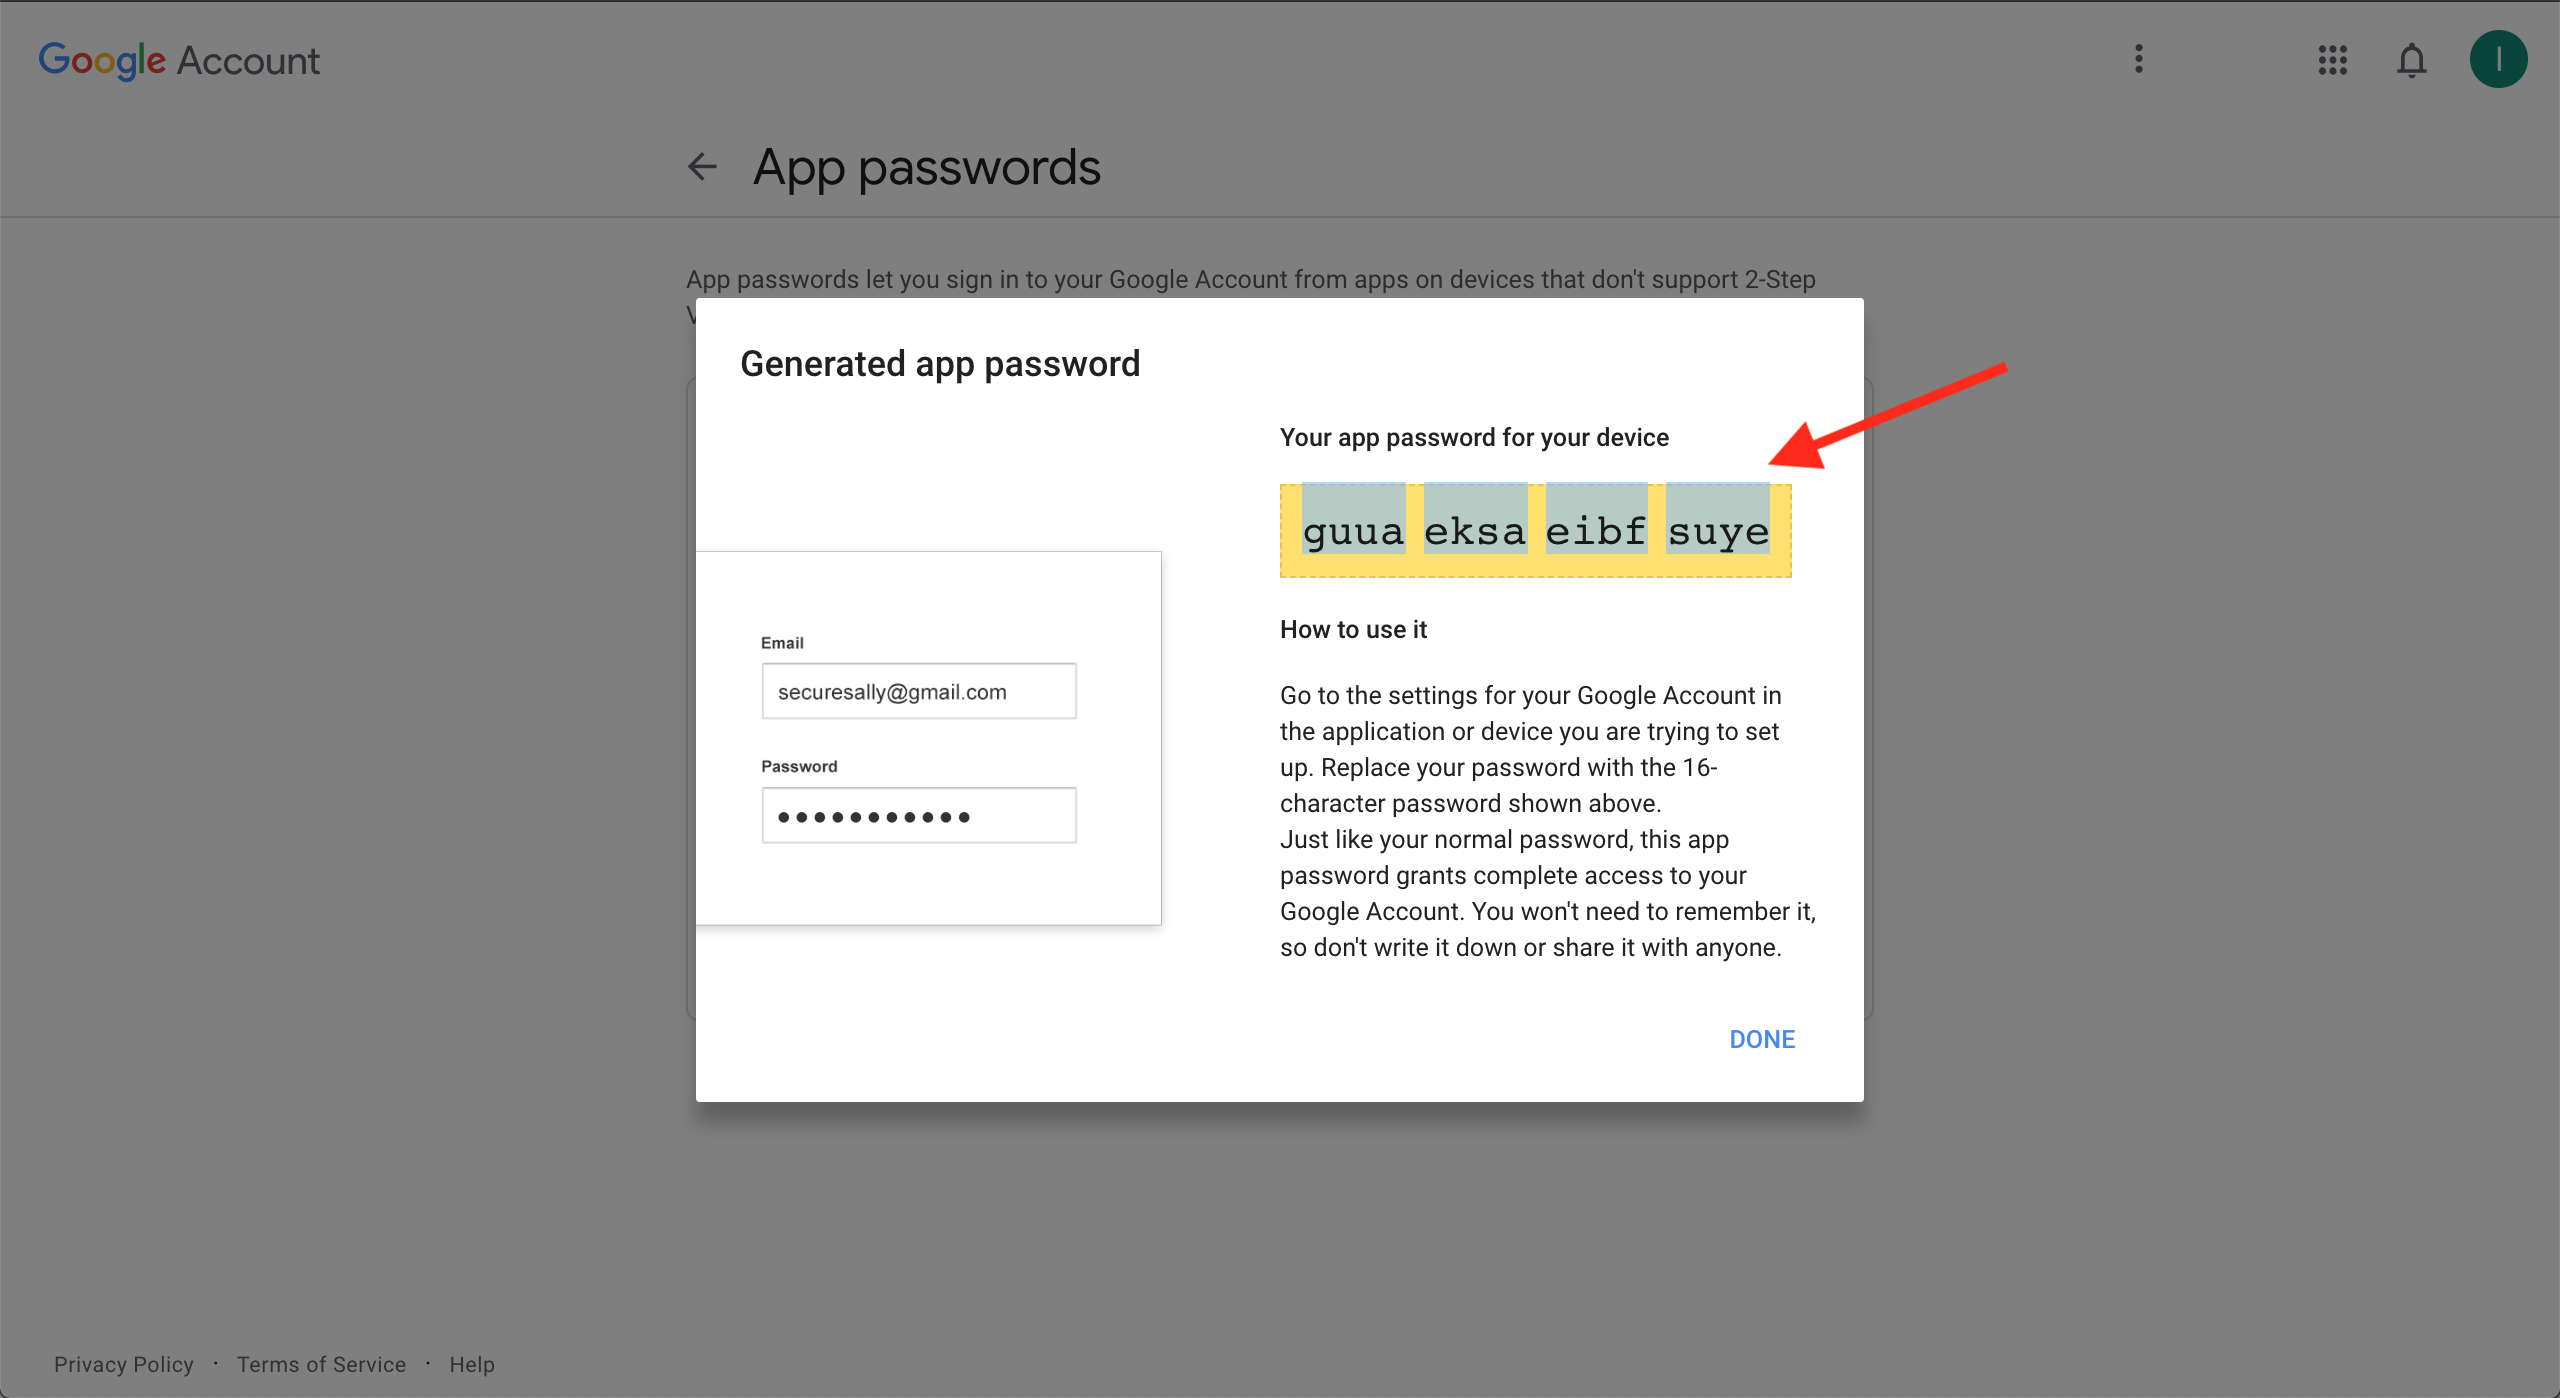 Select and copy the generated password